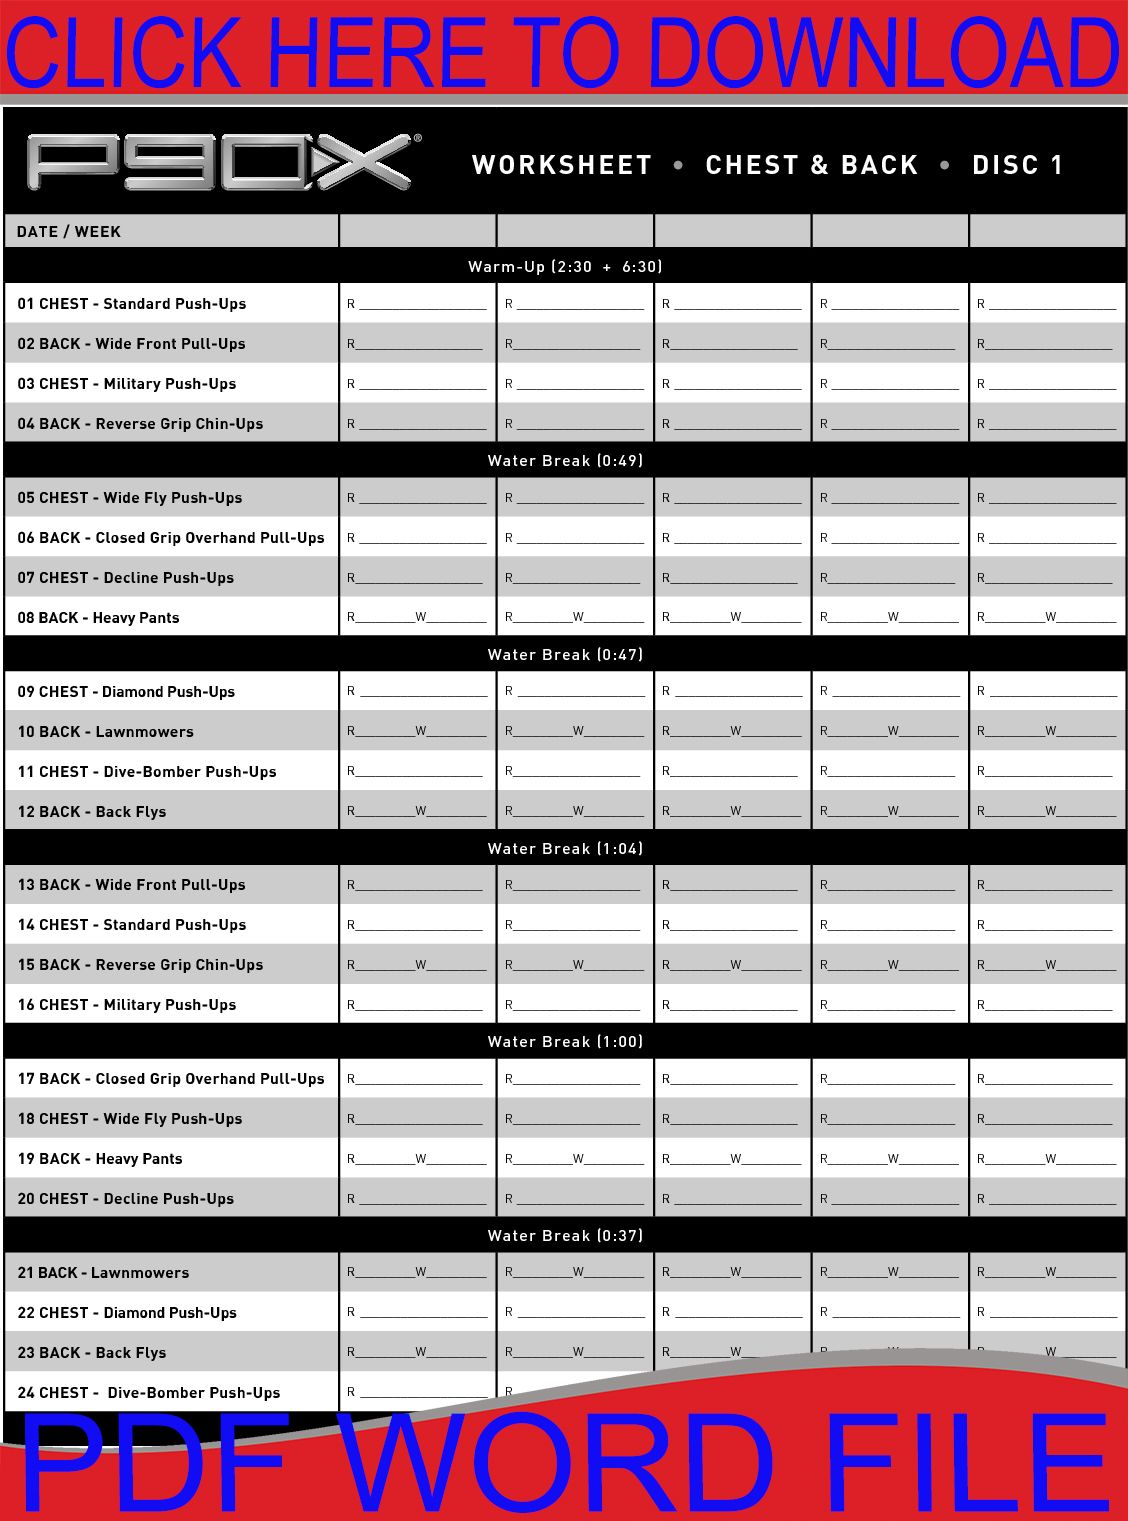 P90x Workout Worksheets